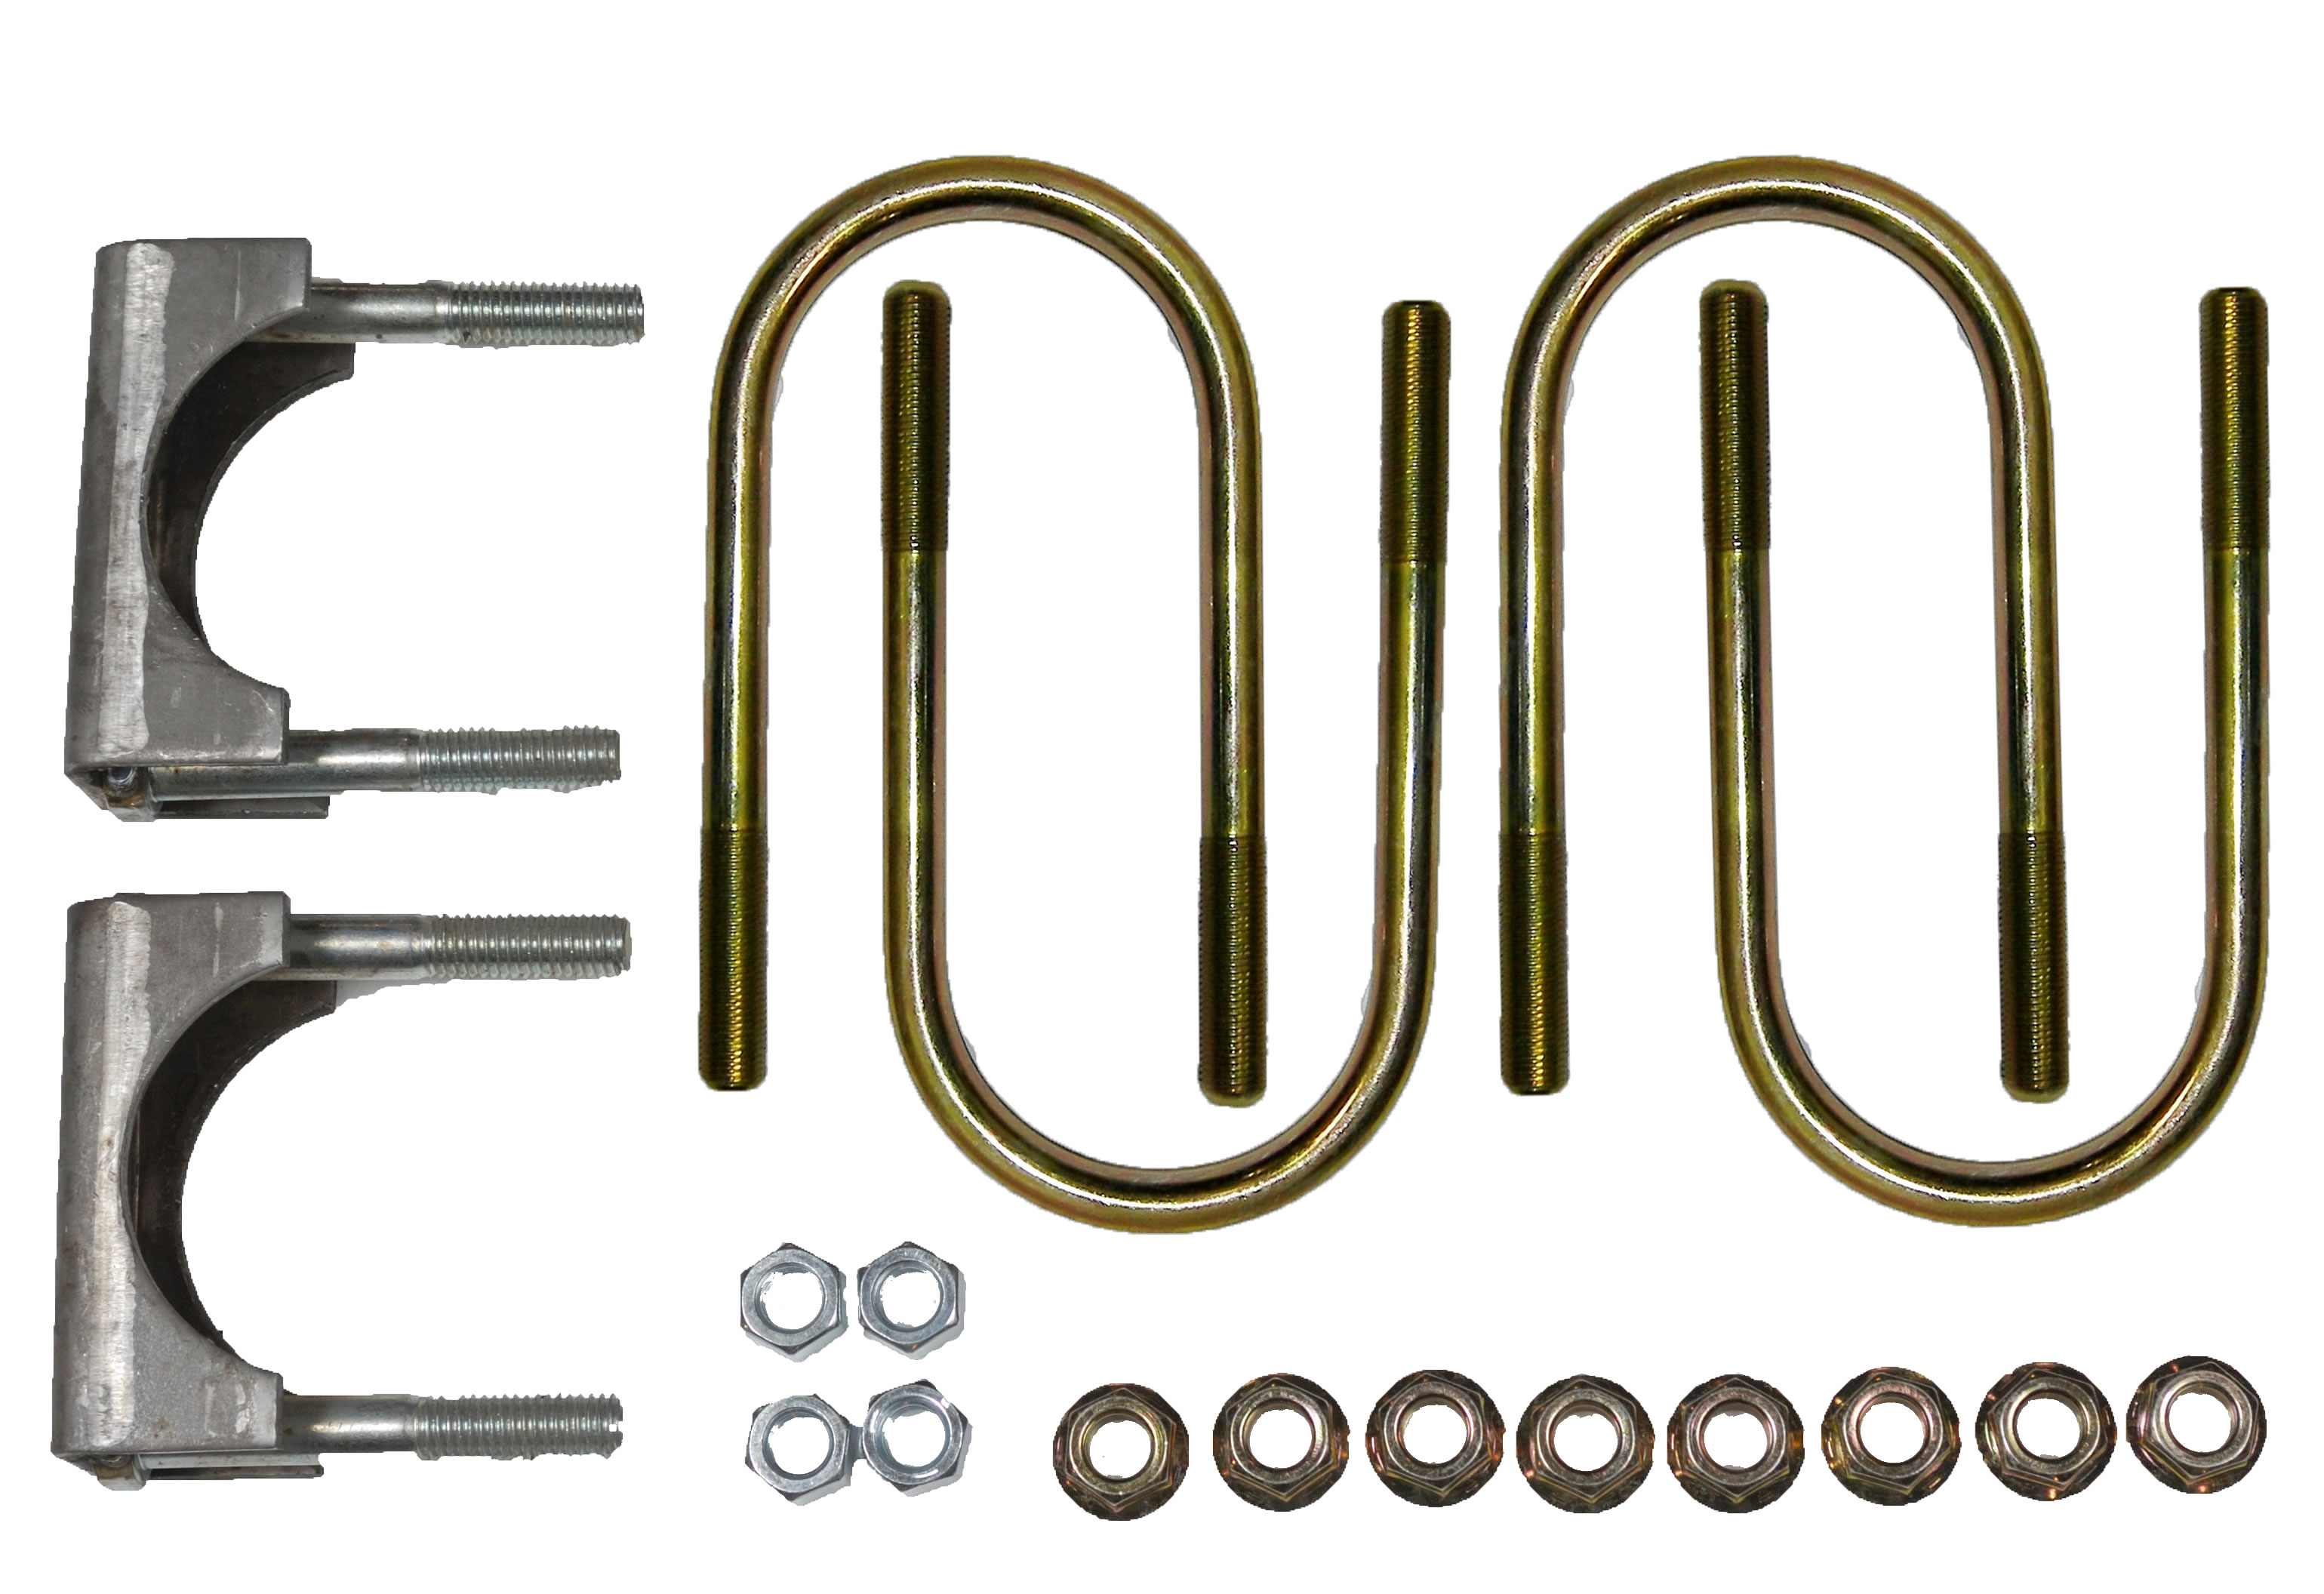 014-162753 AP Products Leaf Spring Over Axle Conversion Kit Fits 3